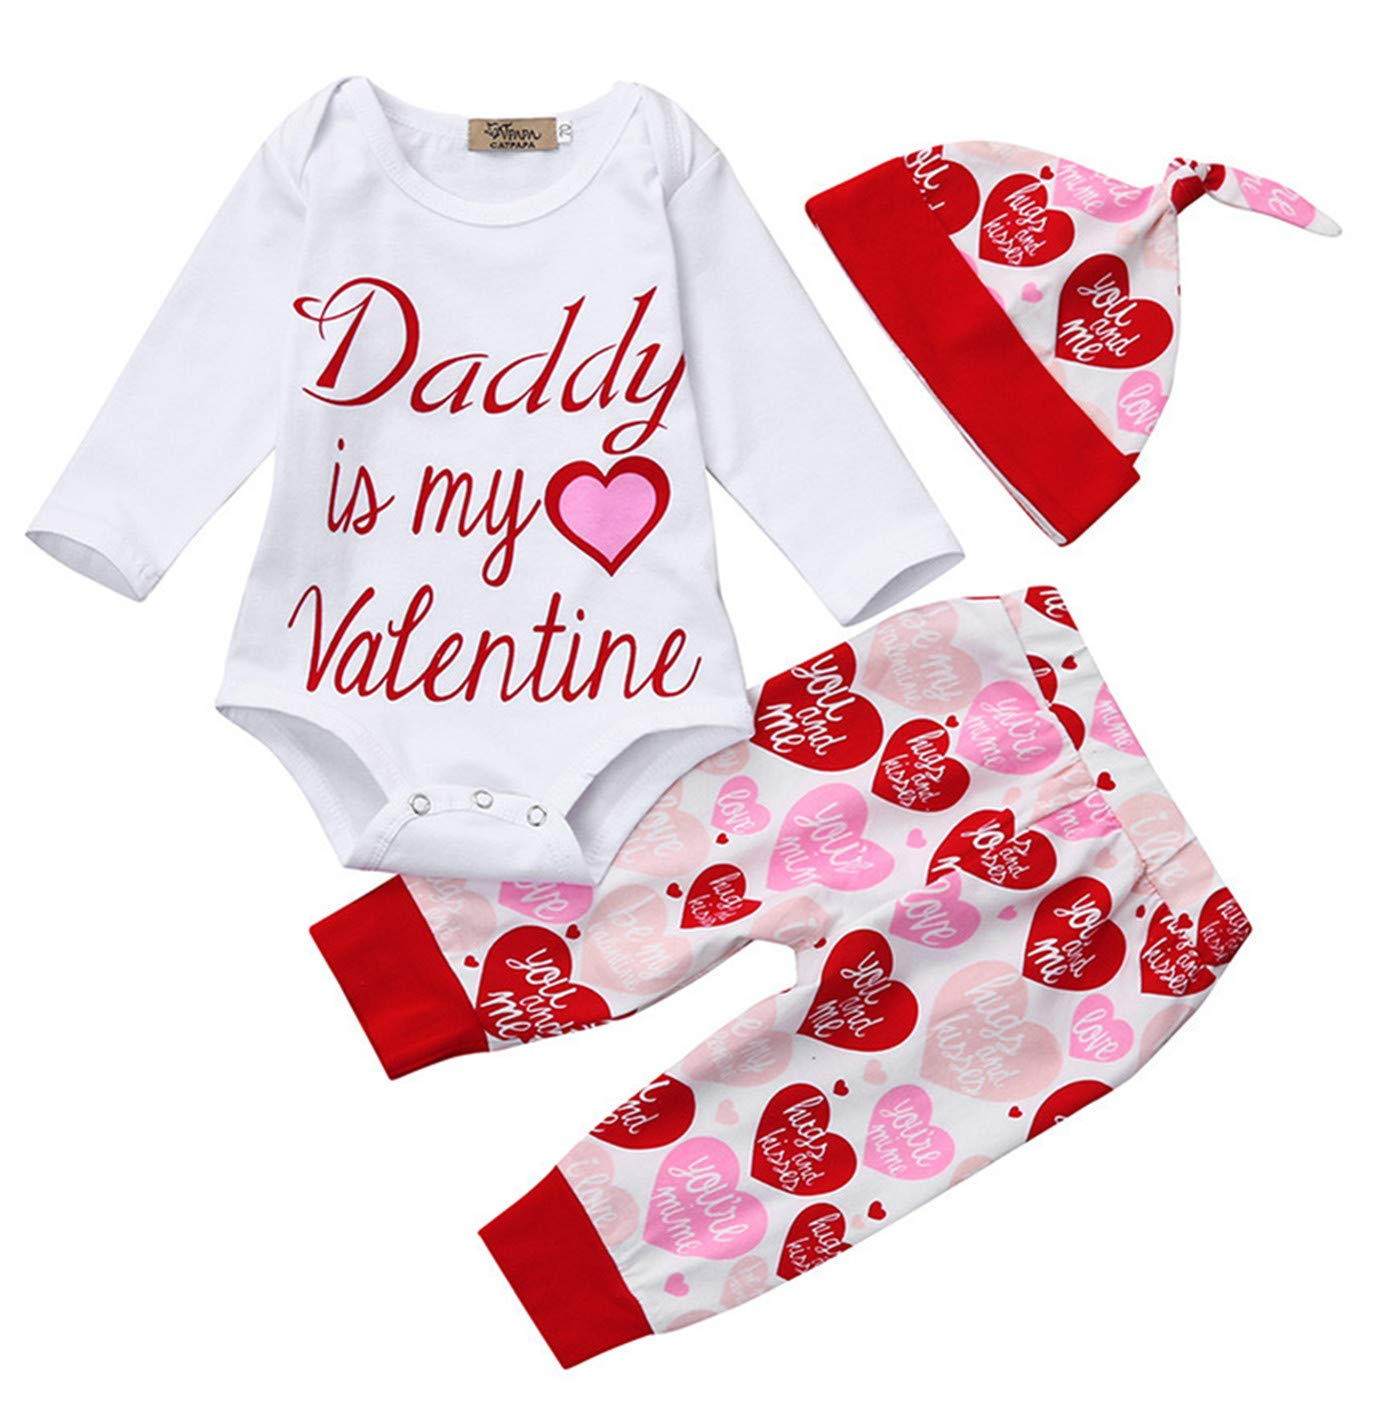 900e9c5bf Amazon.com  Newborn Baby Girls Outfit Valentine s Day Romper ...